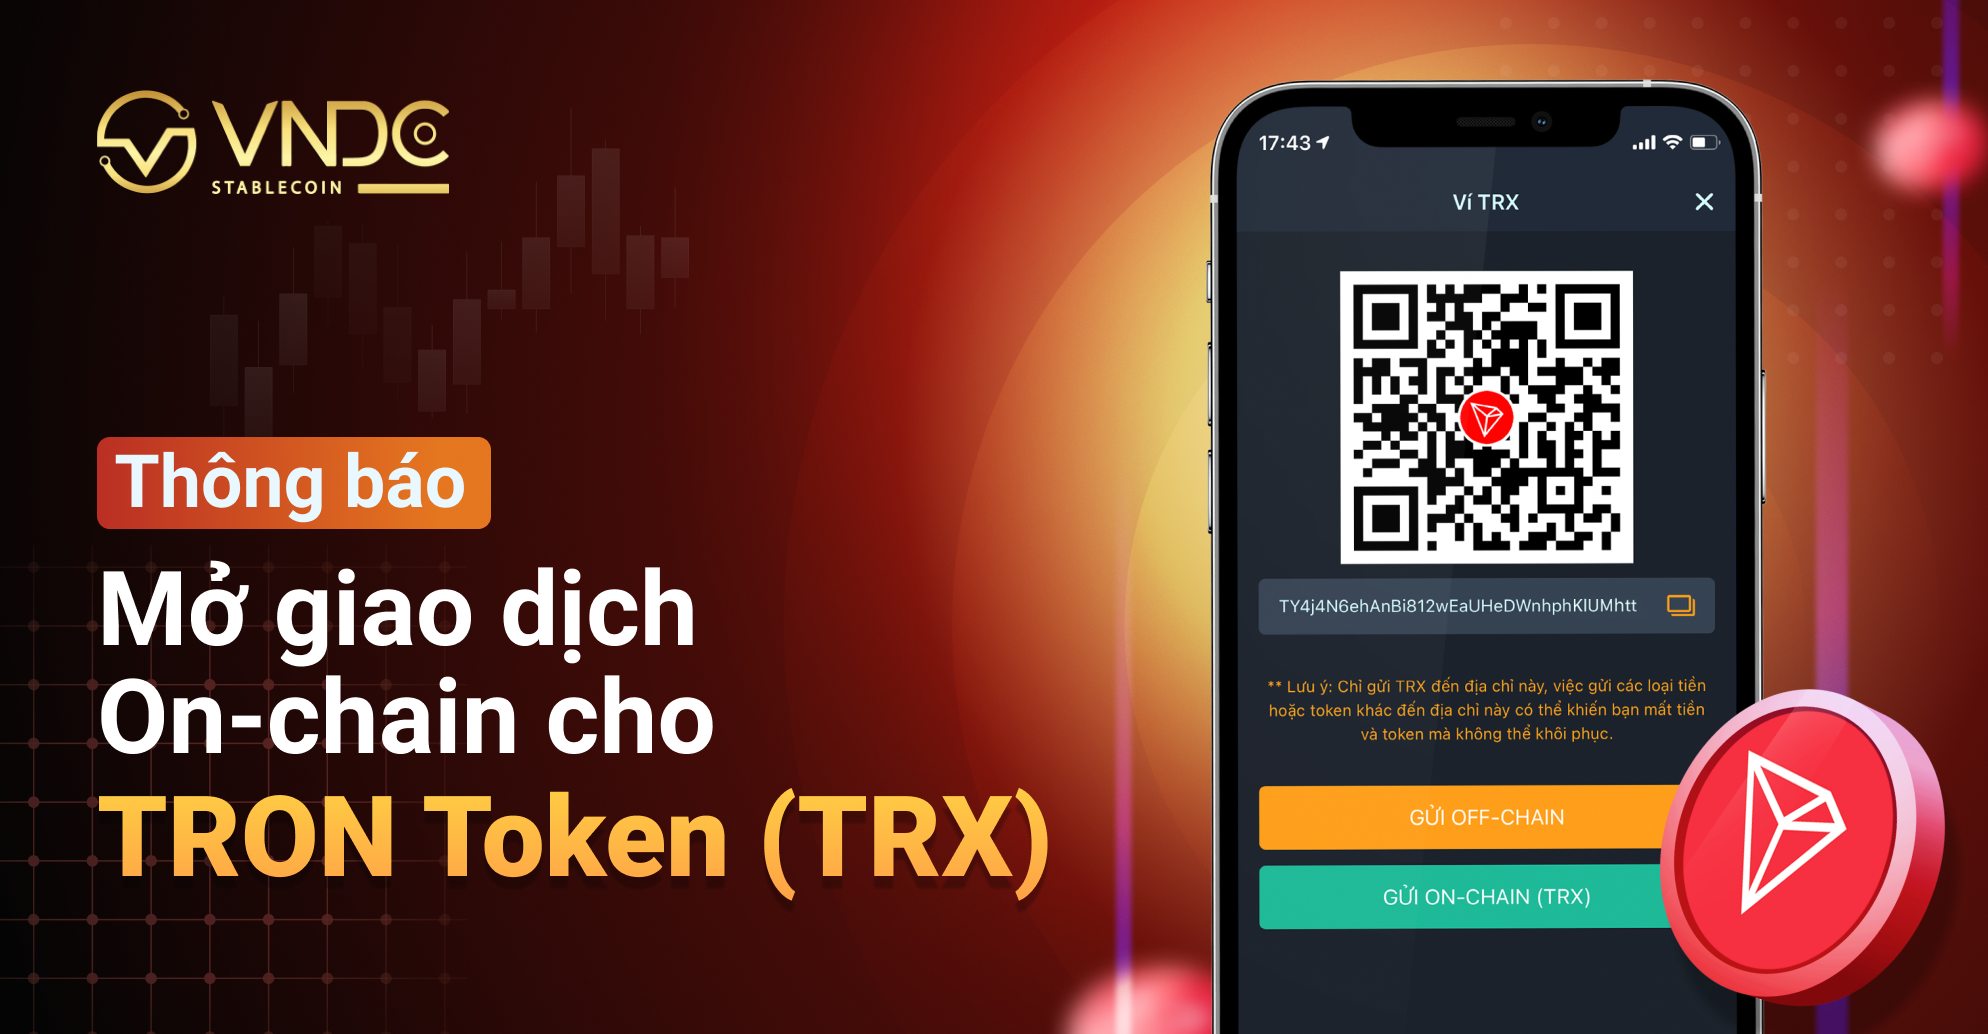 Mở giao dịch On-chain cho TRON Token (TRX)